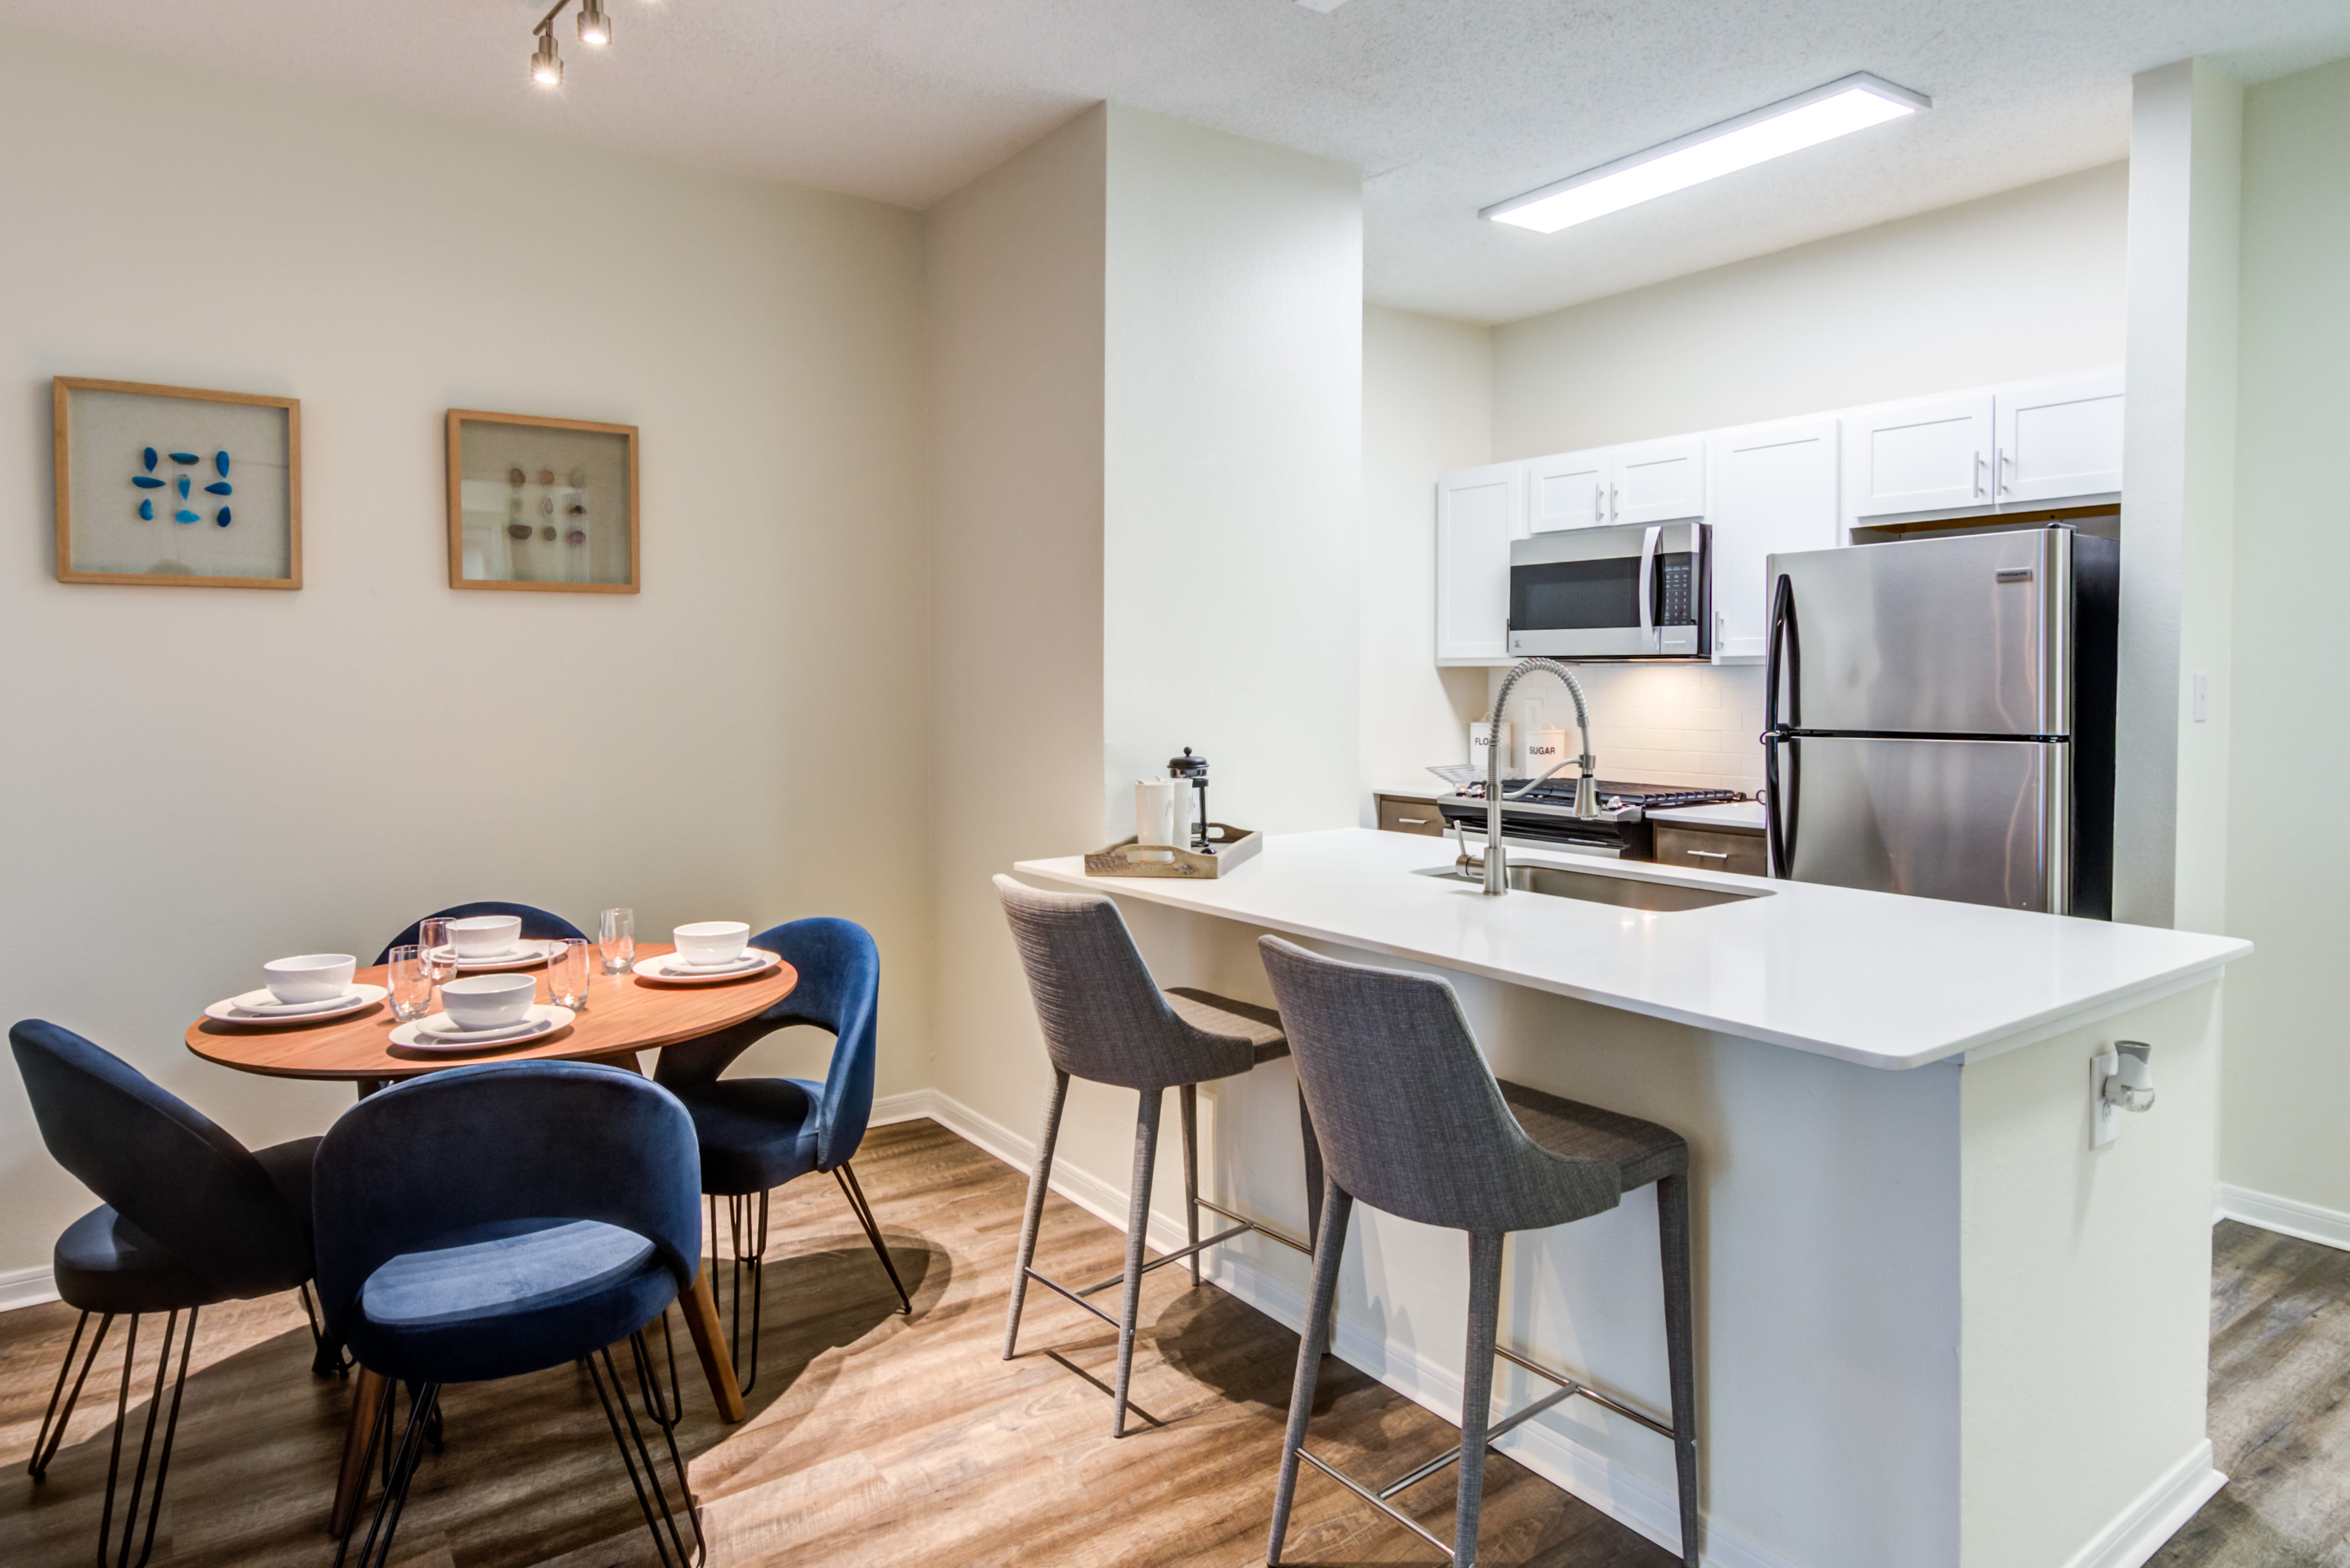 Kitchen and dining area at Sofi Parc Grove in Stamford, Connecticut